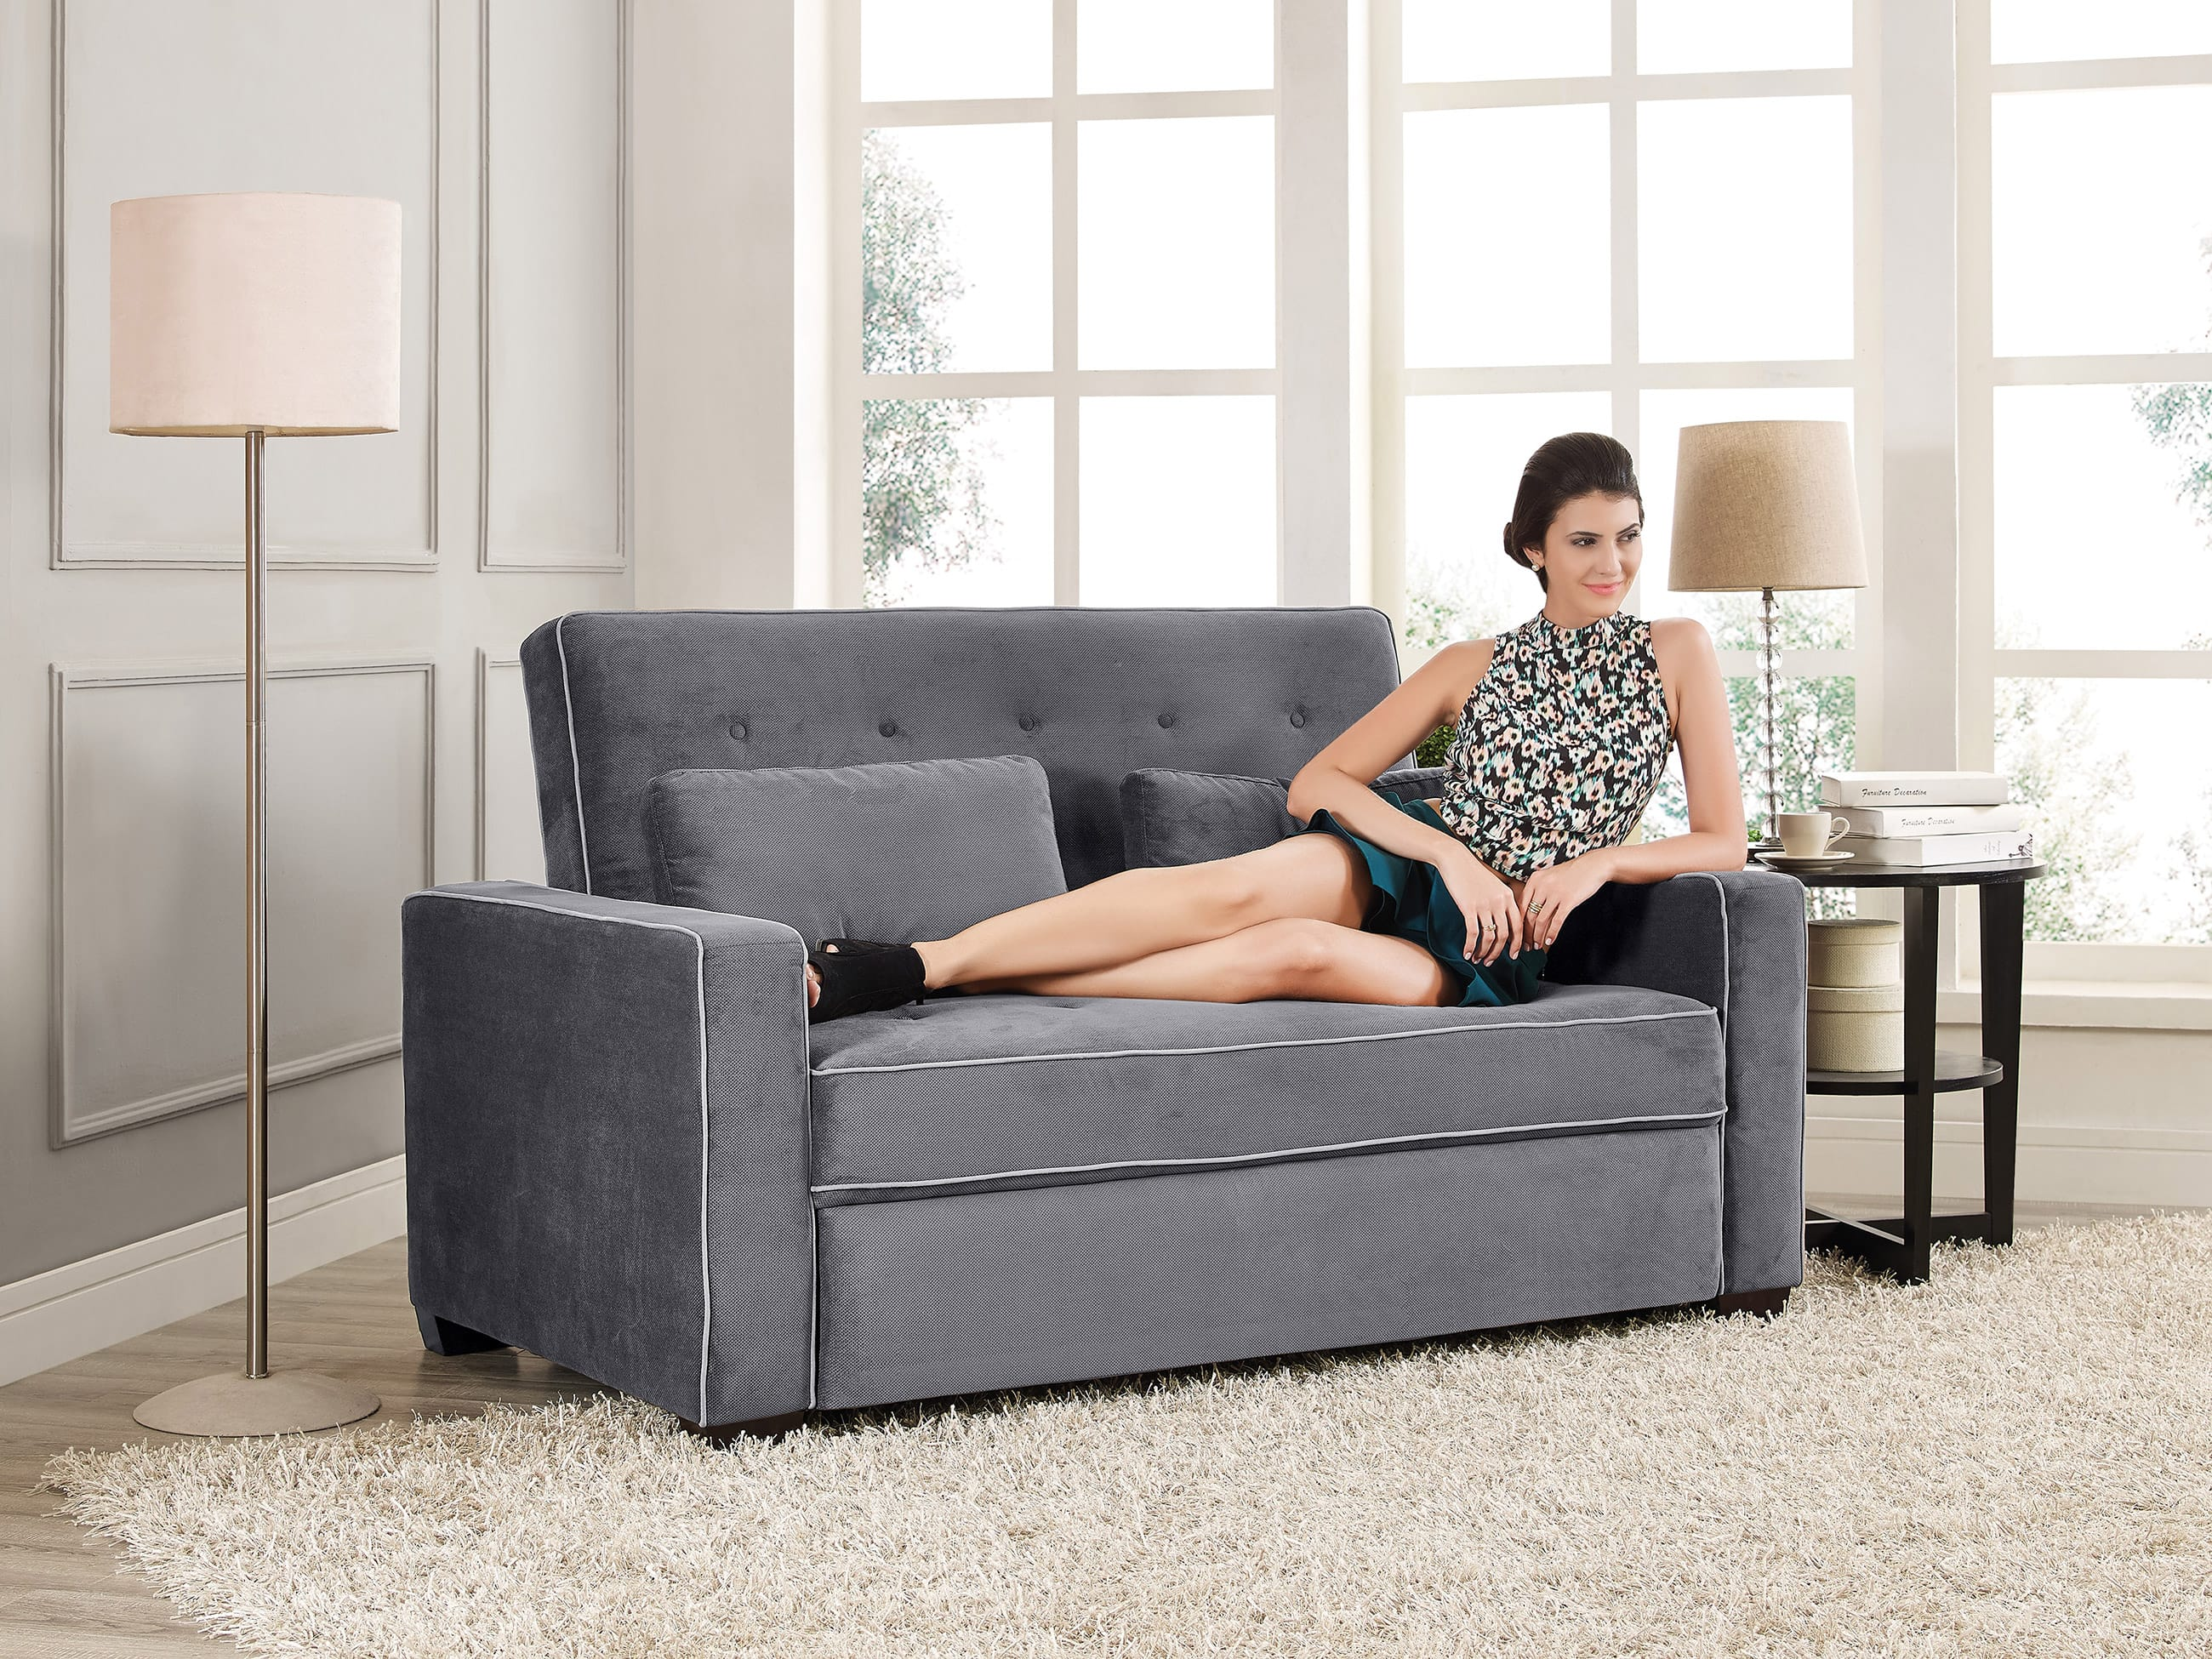 serta sofa sleeper full size southern furniture gibson augustine loveseat moon grey by